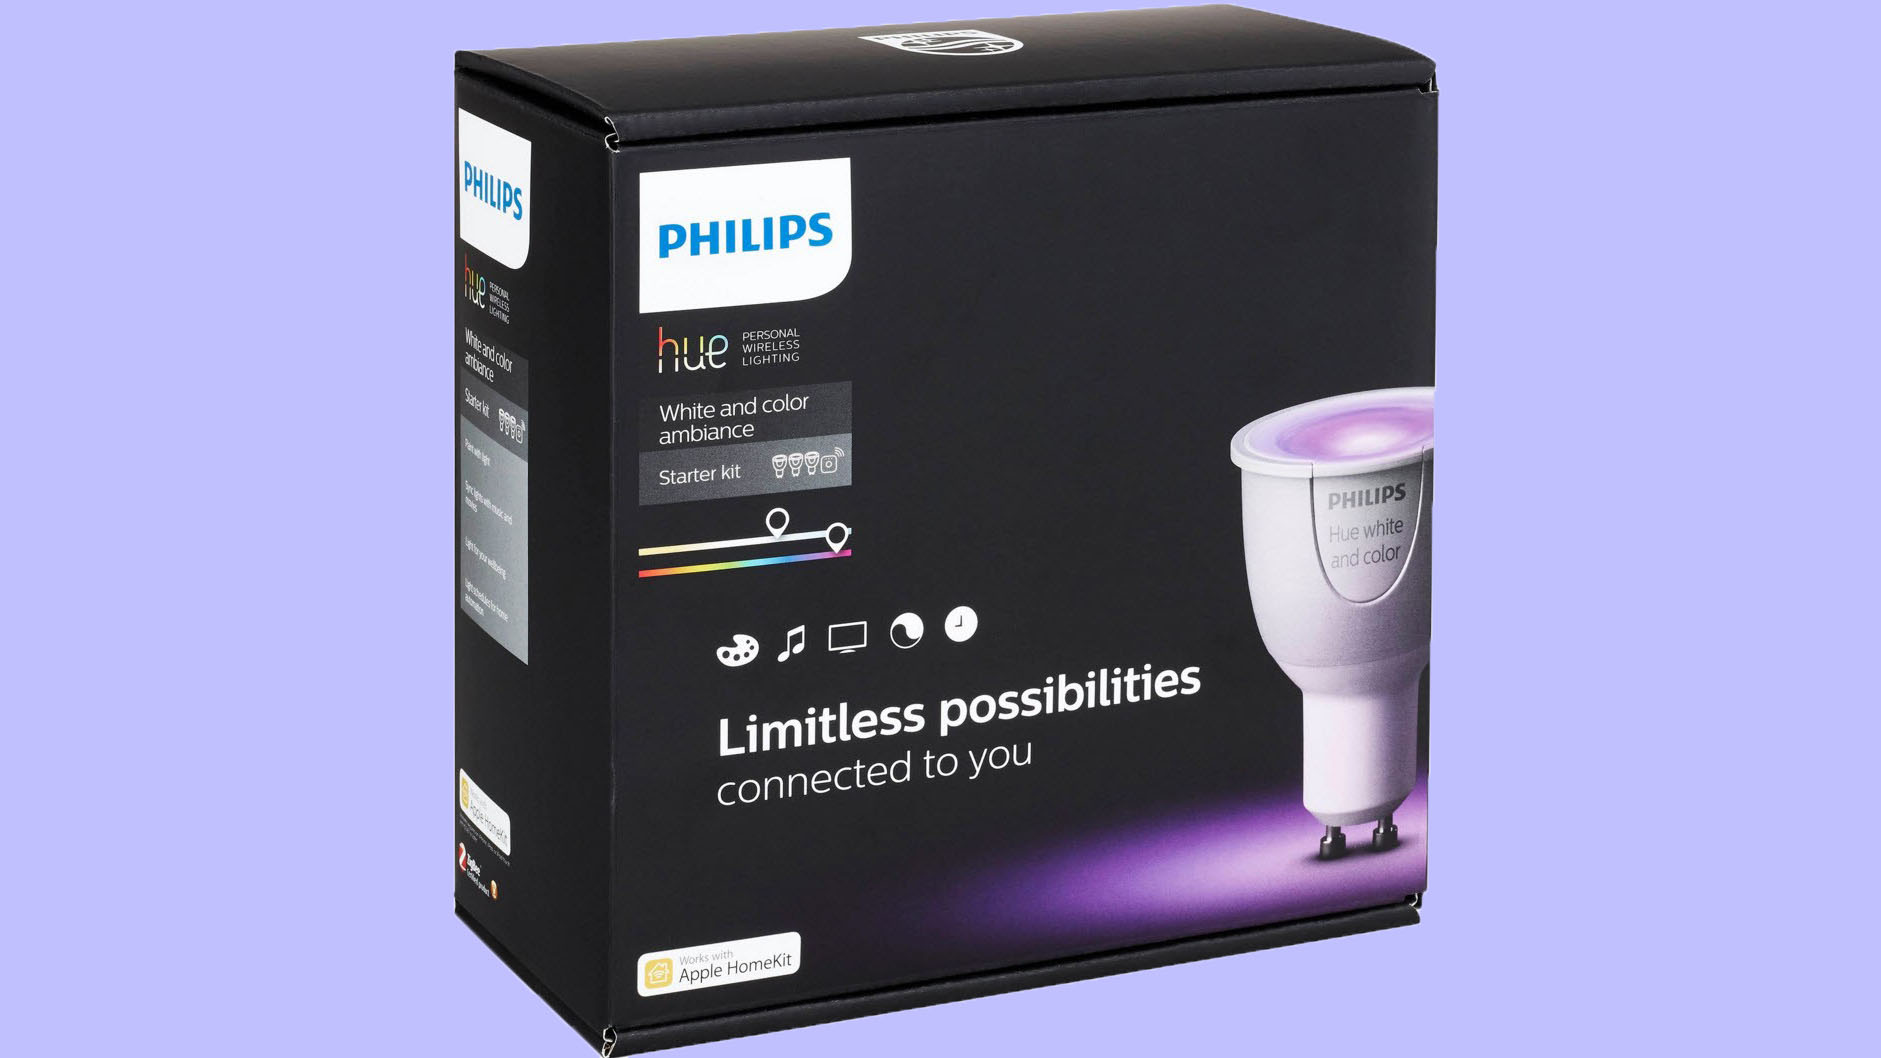 Hue G10 The Best Philips Hue Gu10 Spotlight Bulb Deals For Black Friday